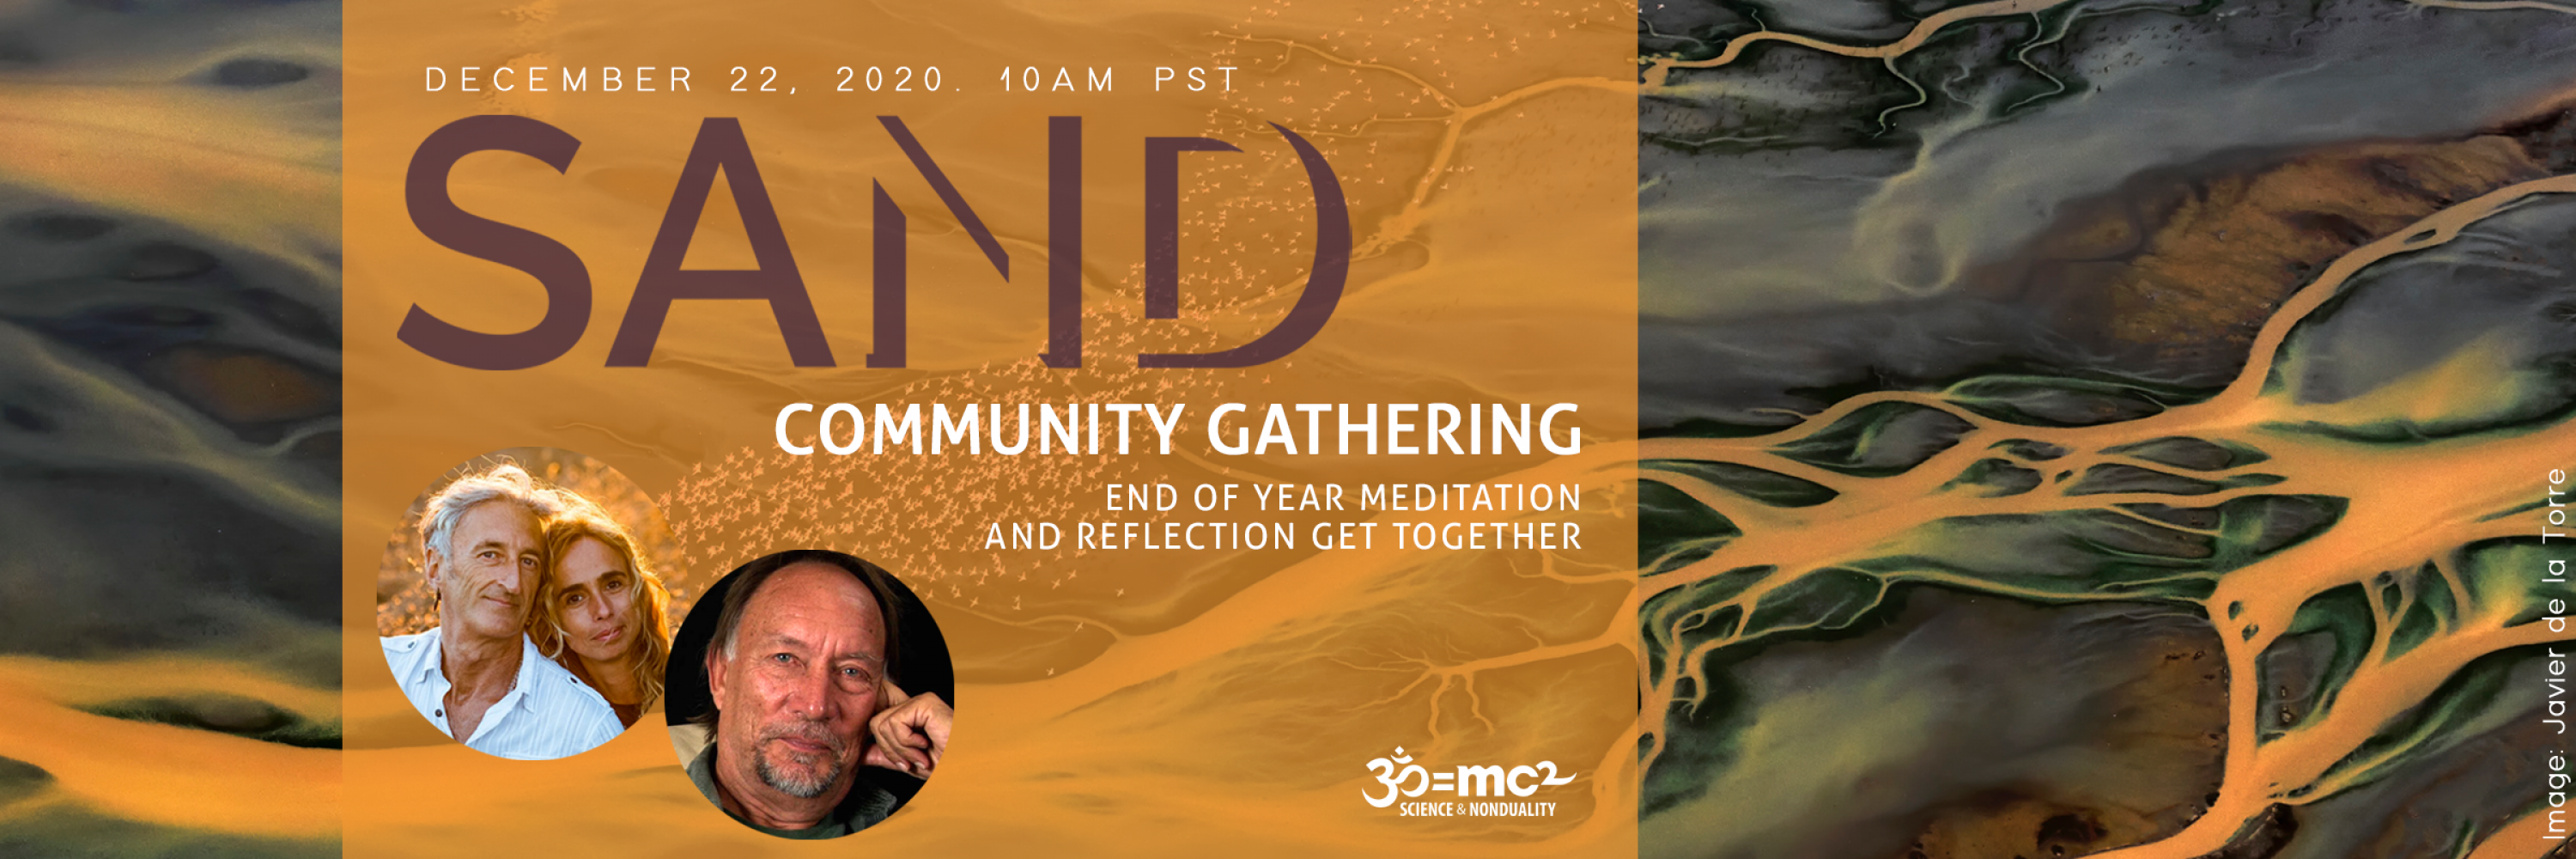 End of Year Community Gathering